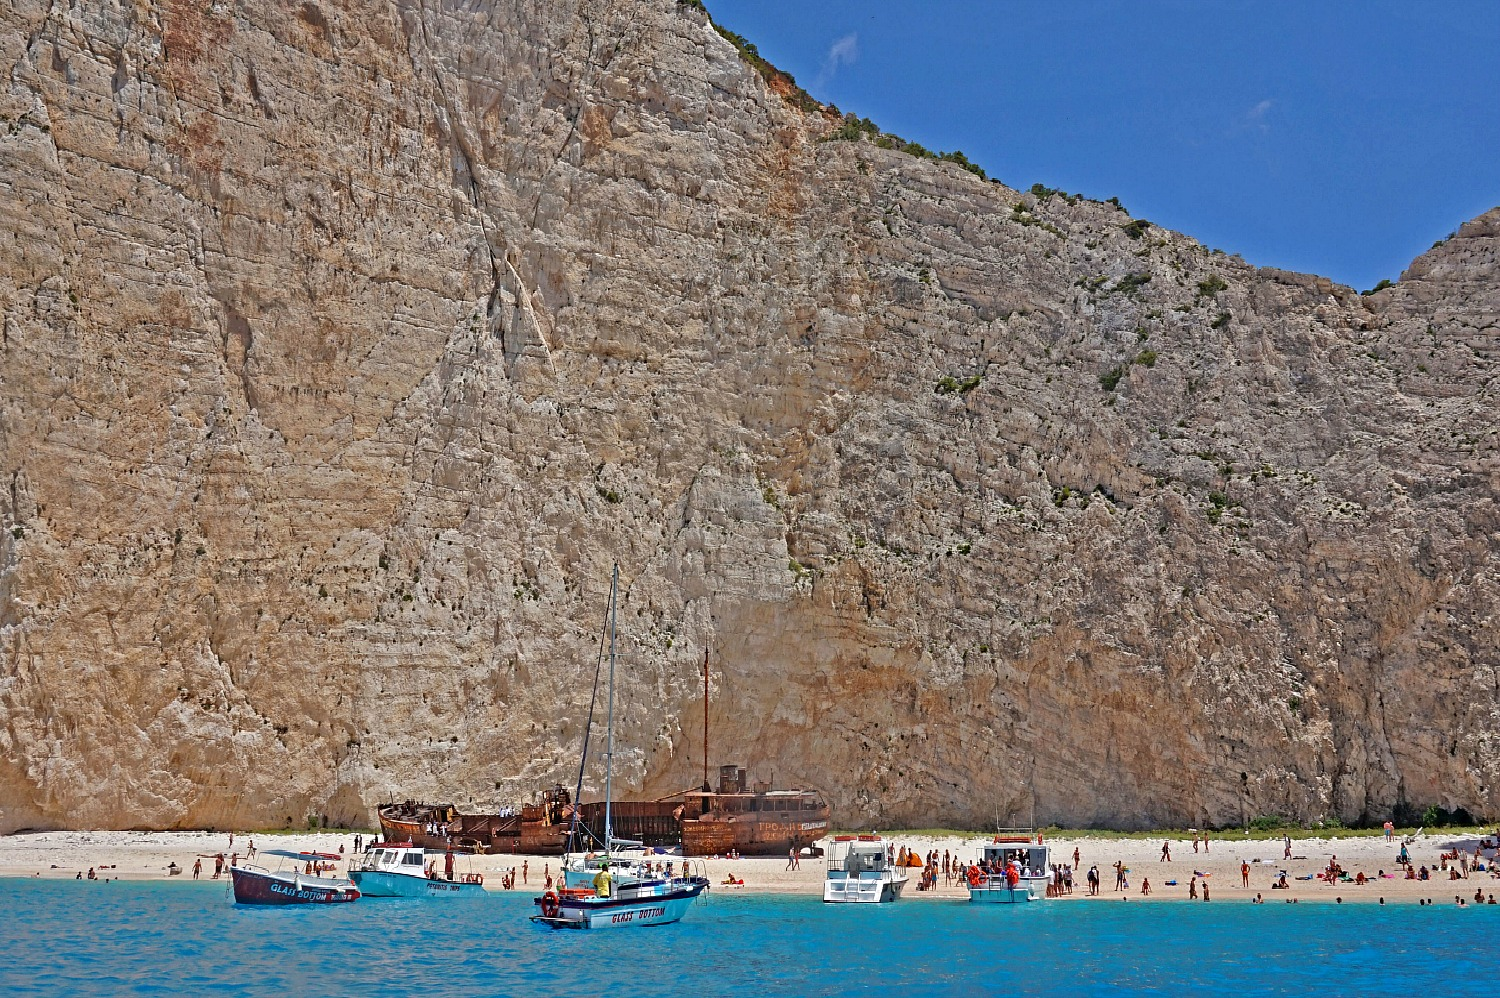 Zakynthos Greece - hot to visit. Famous Shipwreck Beach from the water.